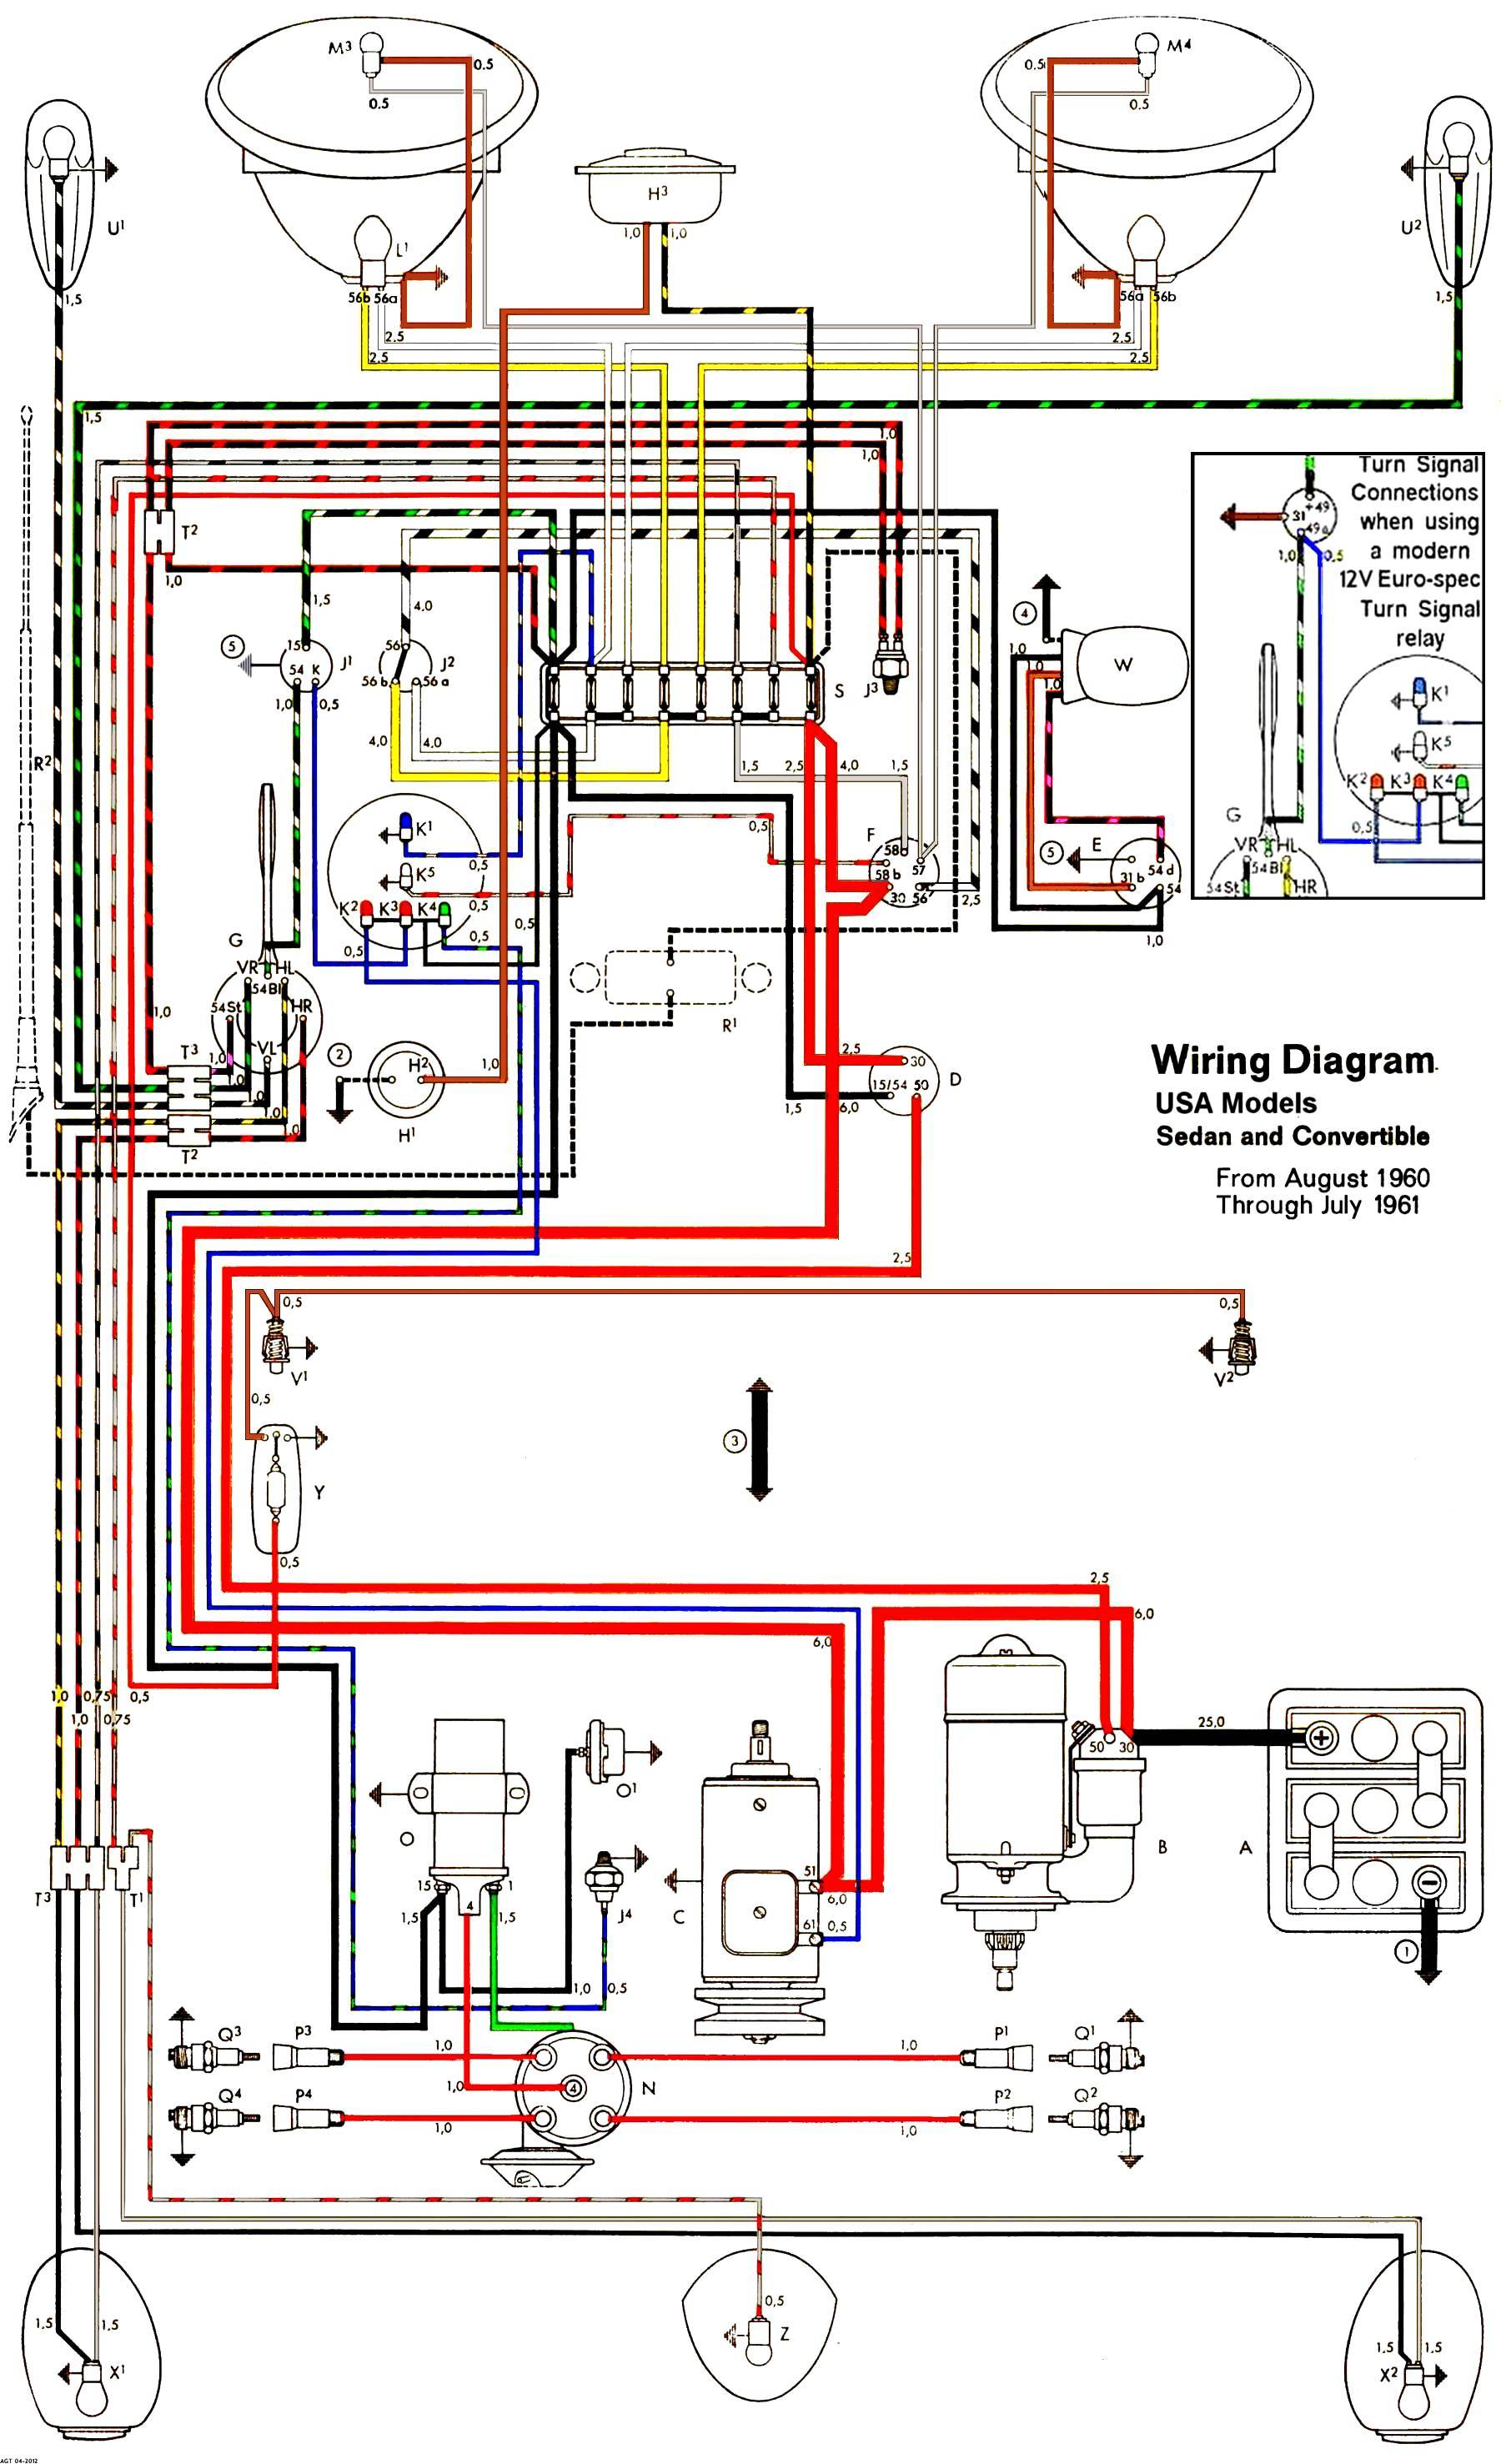 Vw Car Wiring Diagram Automotive Volkswagen Beetle Stereo Harness Thesamba Com Type 1 Diagrams Rh Kit 2001